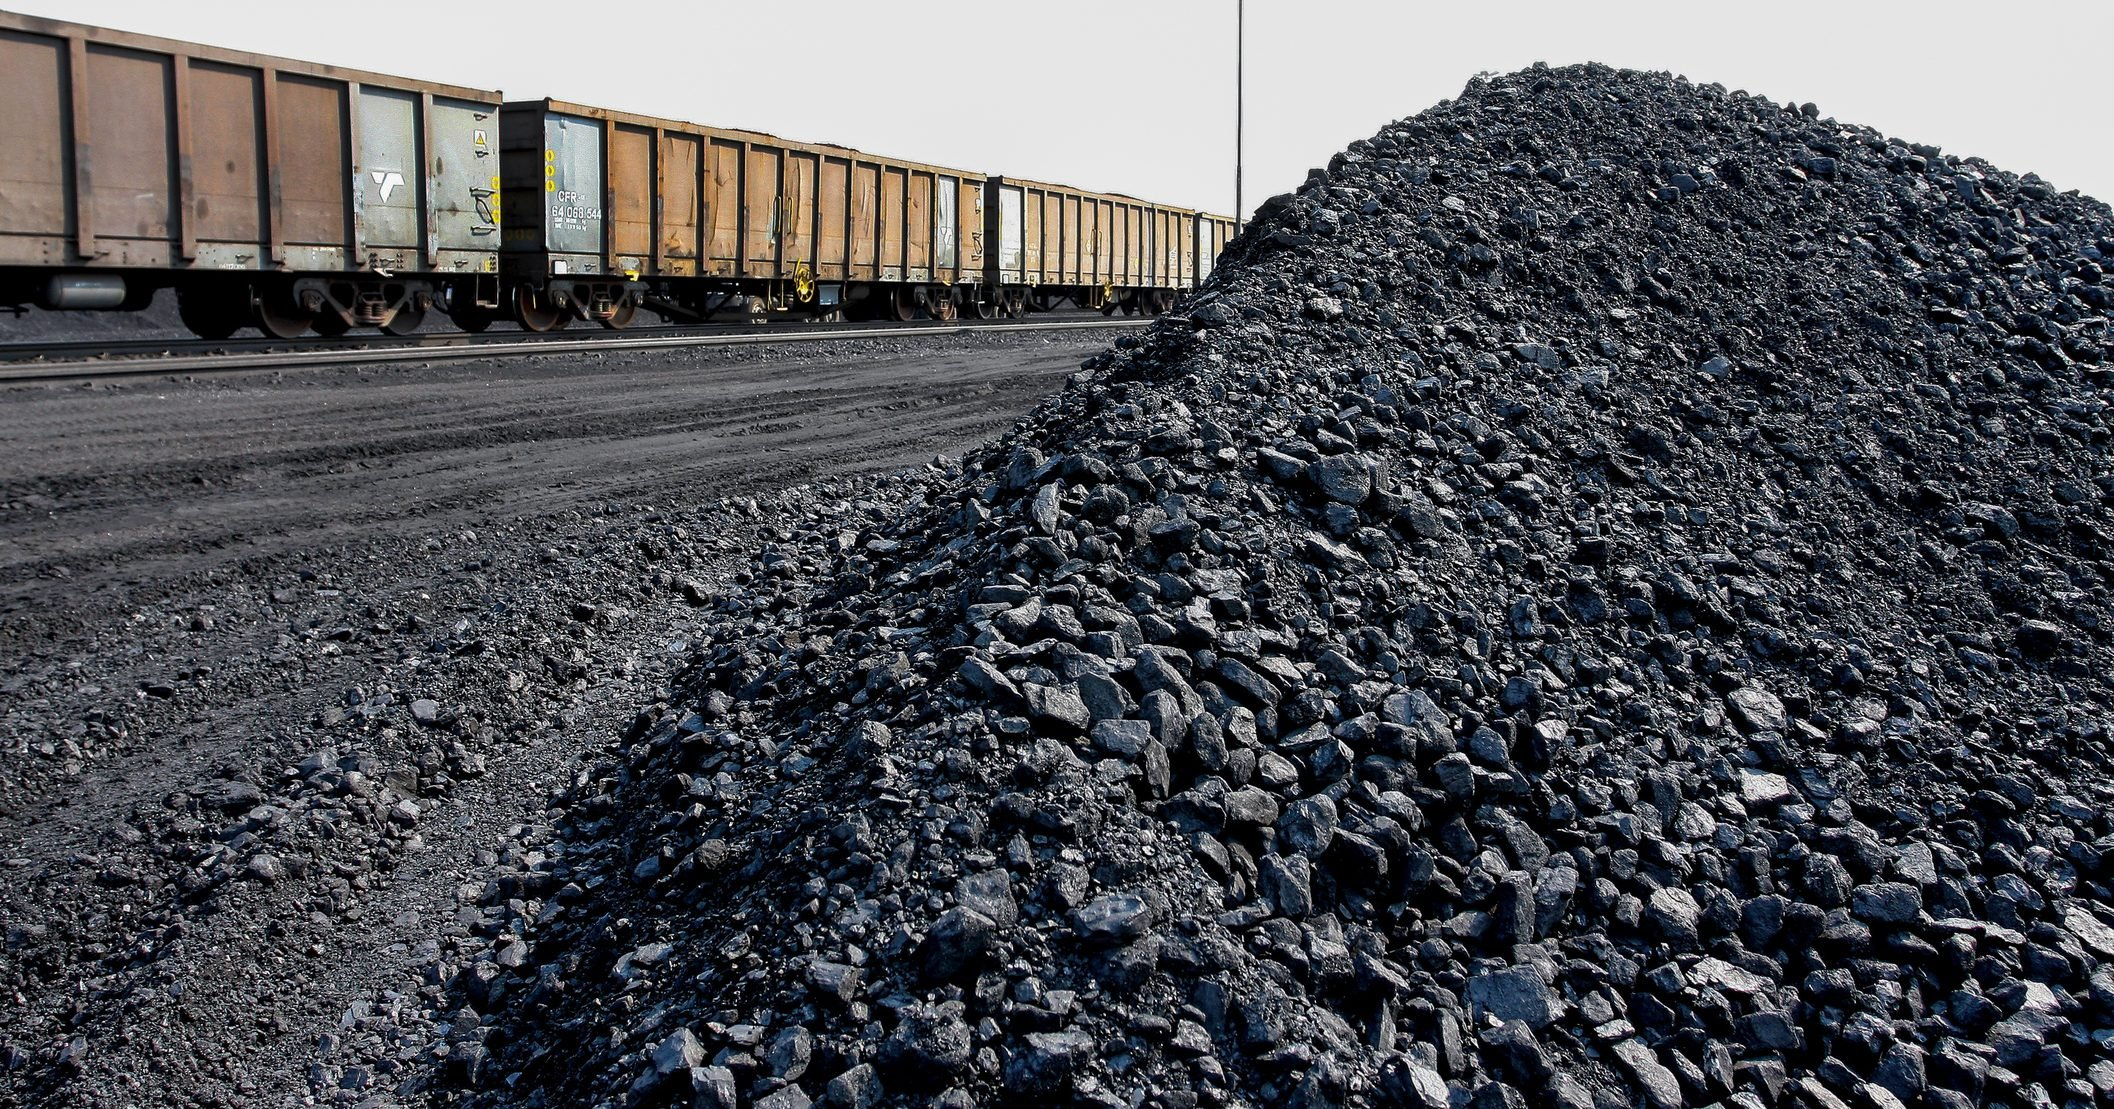 Ukrenergo informed about the critical situation of coal stocks